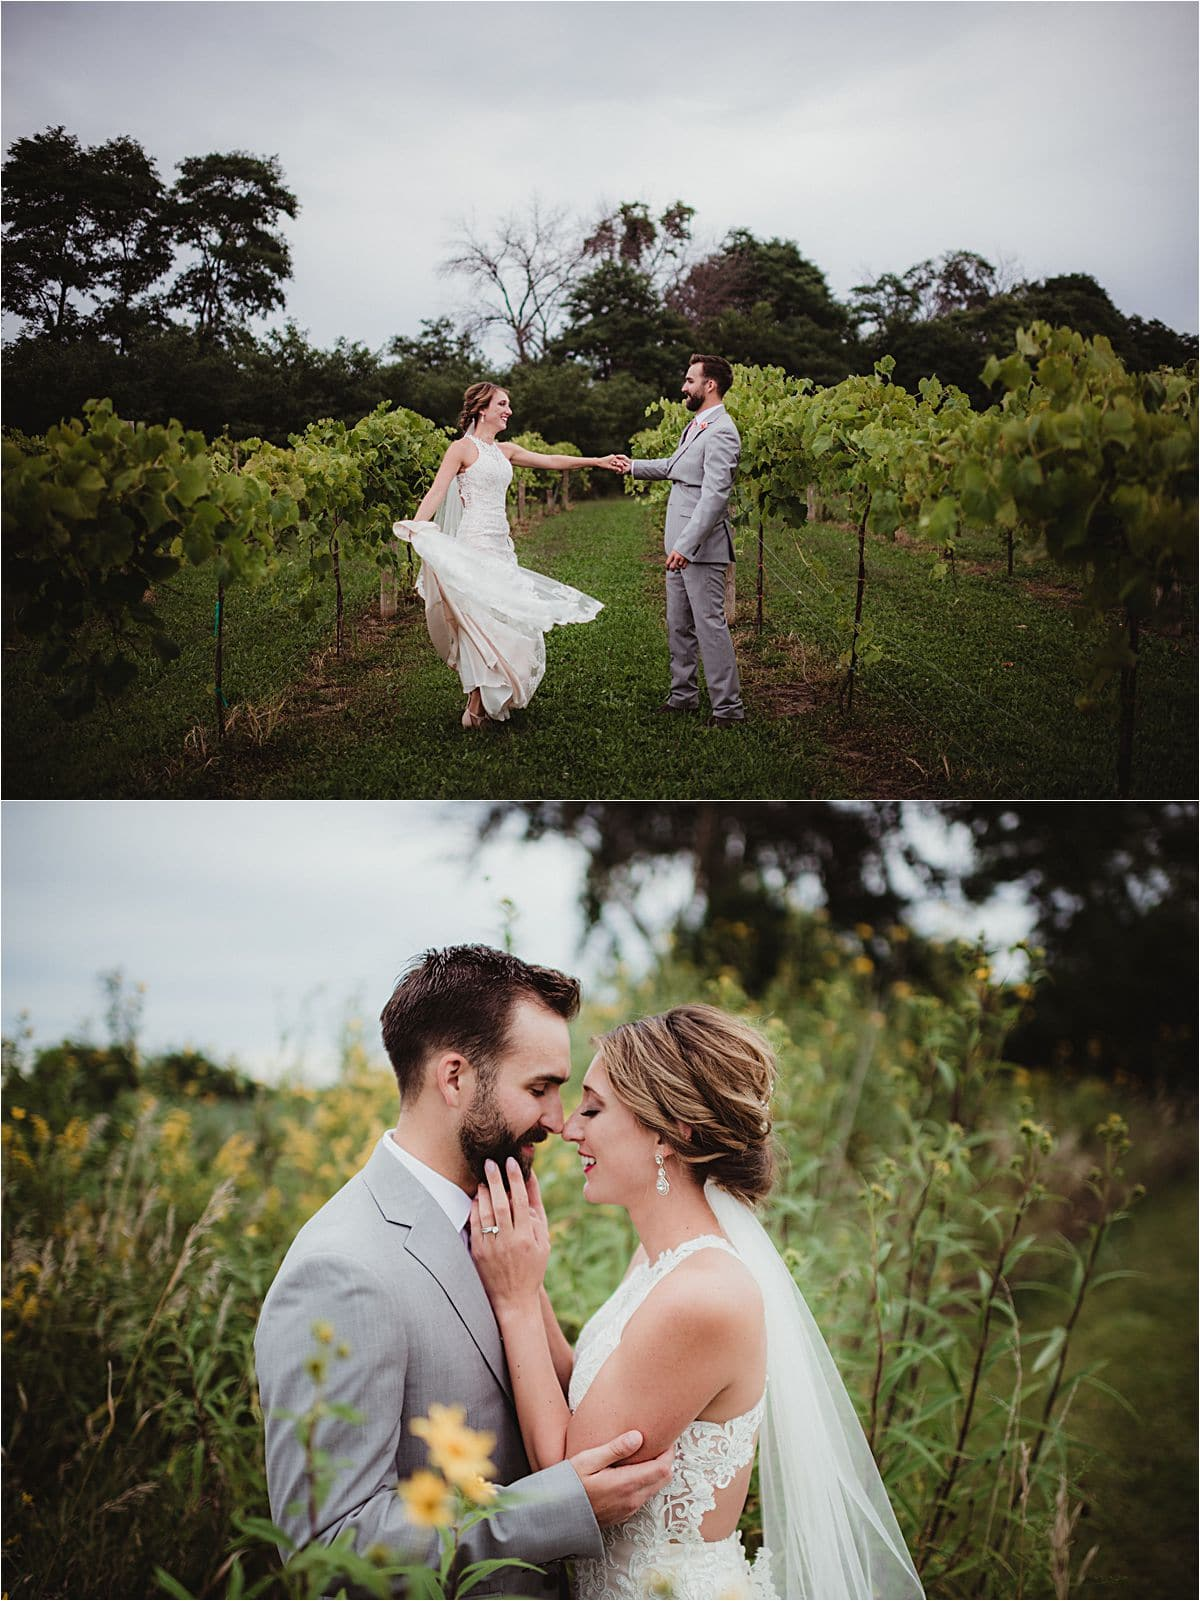 Couple Snuggling and Dancing in Field